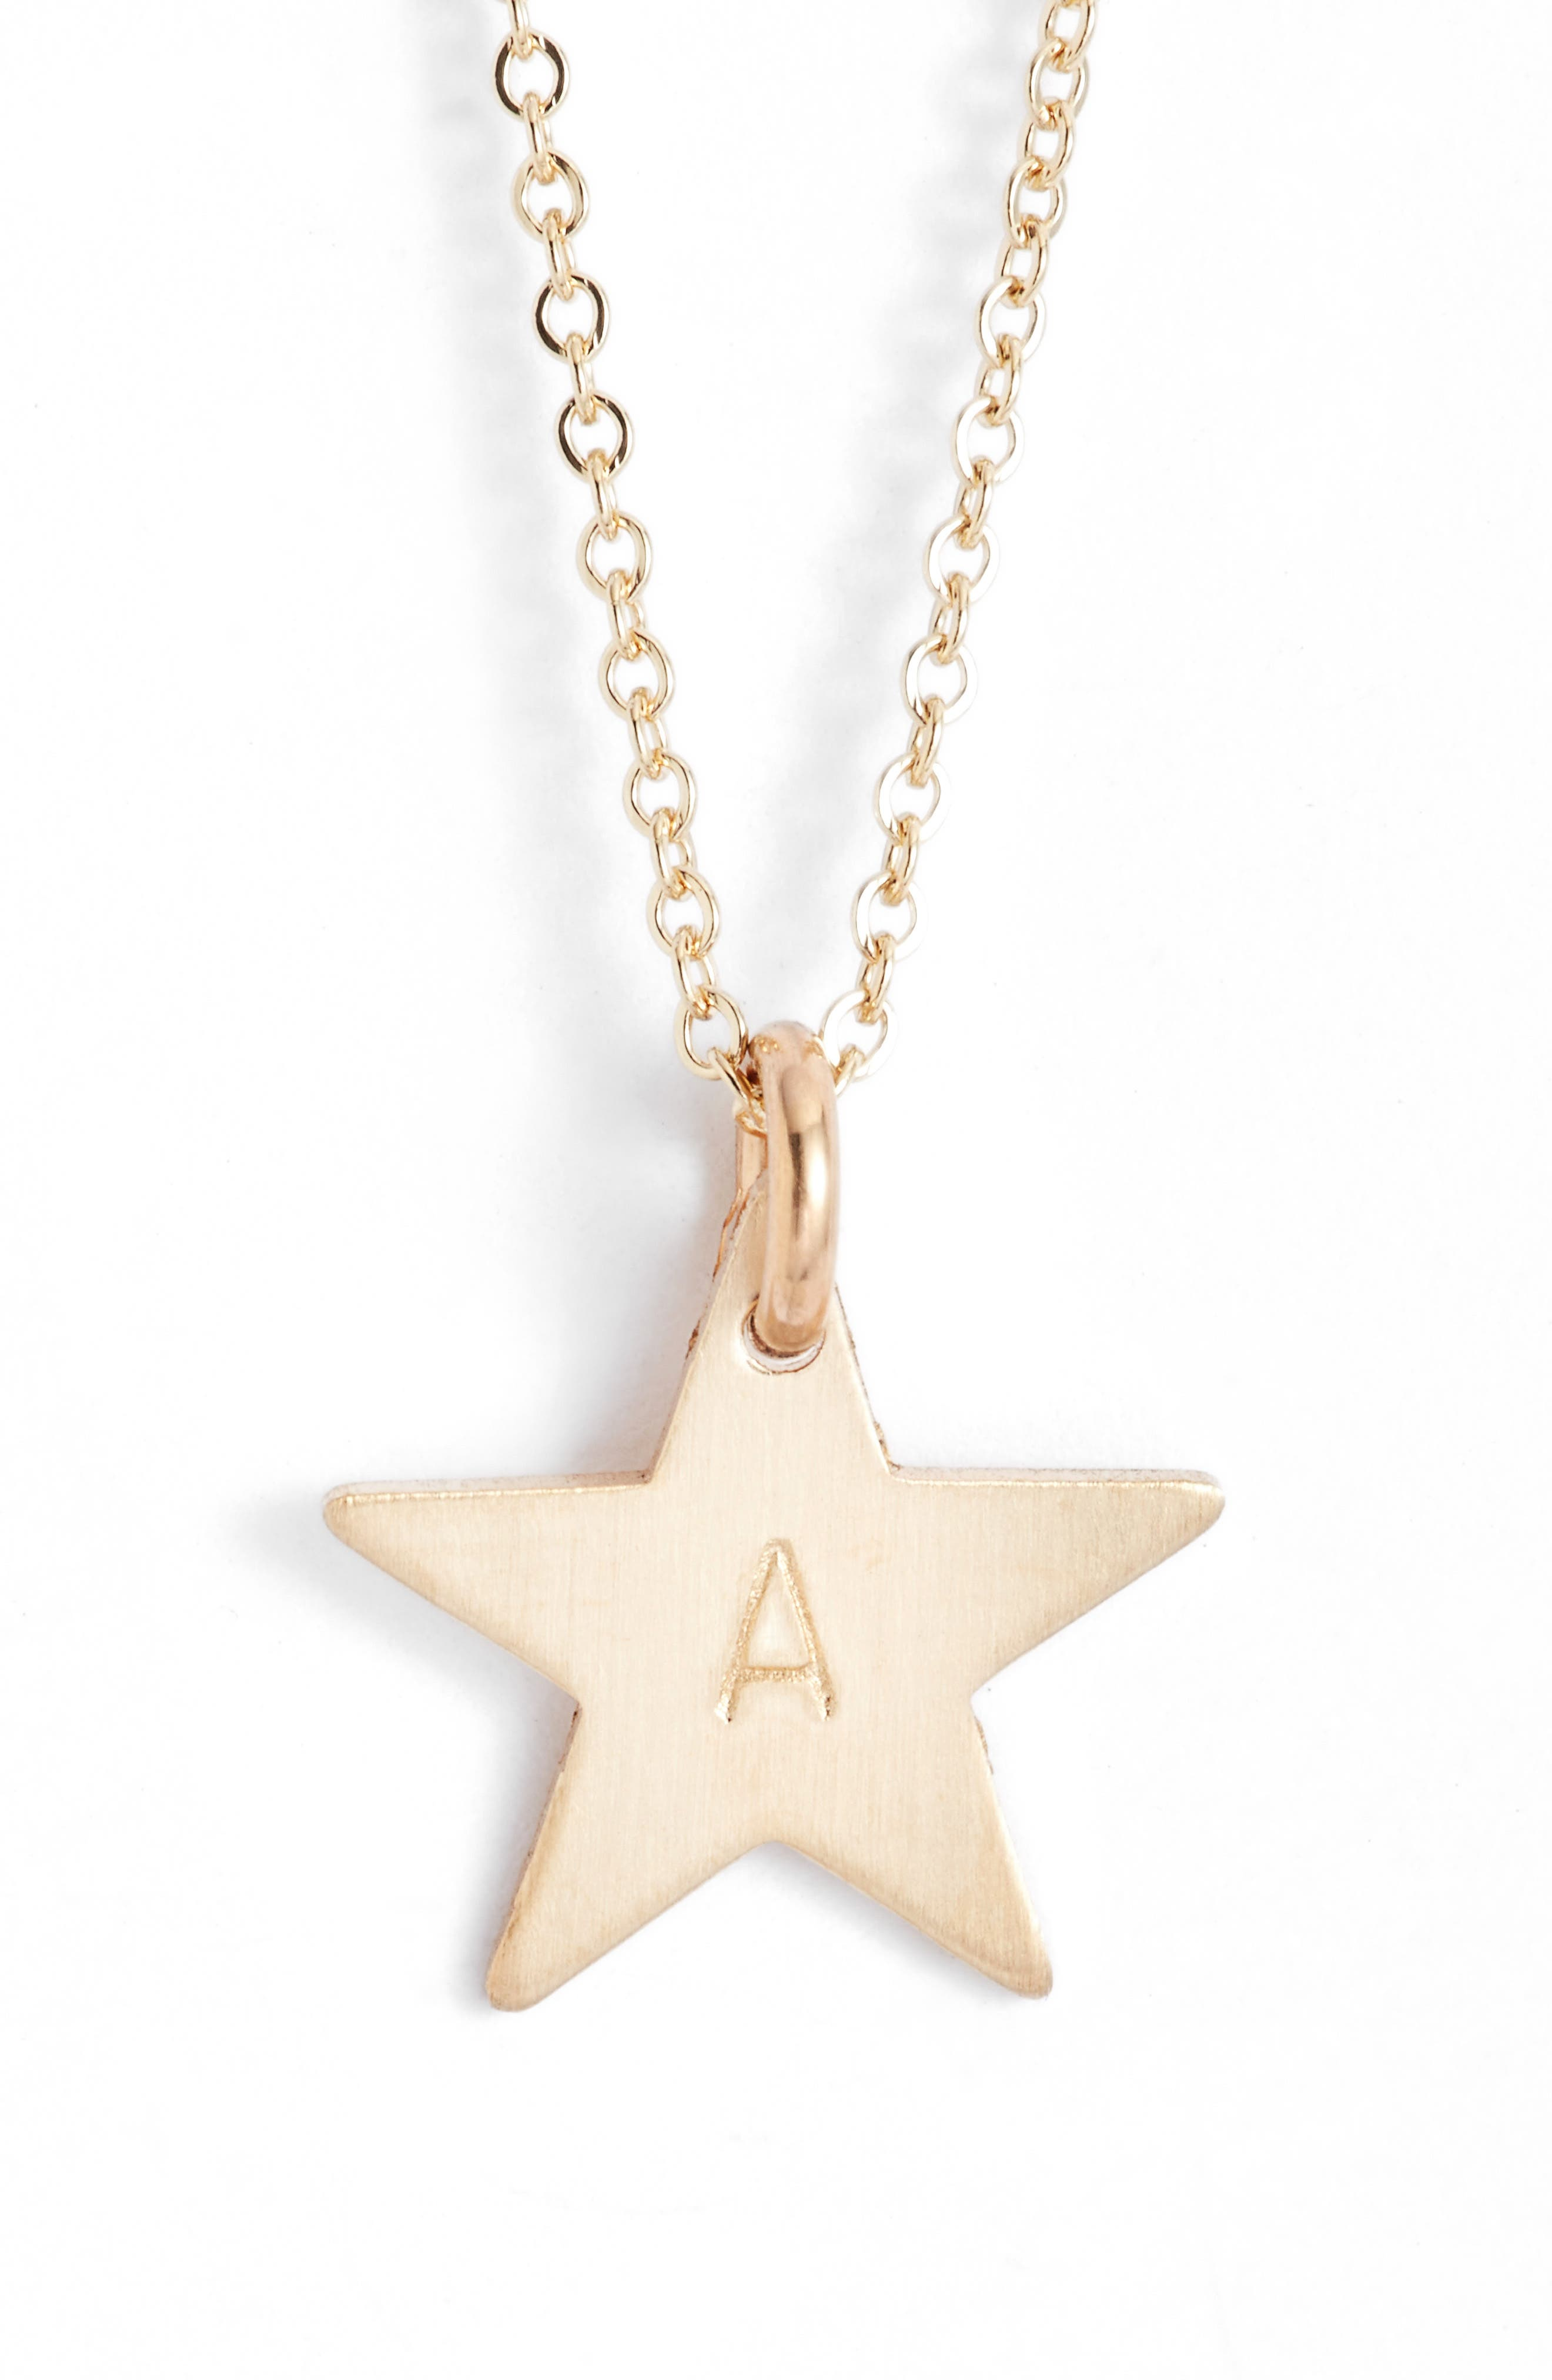 14k-Gold Fill Initial Mini Star Pendant Necklace,                         Main,                         color,